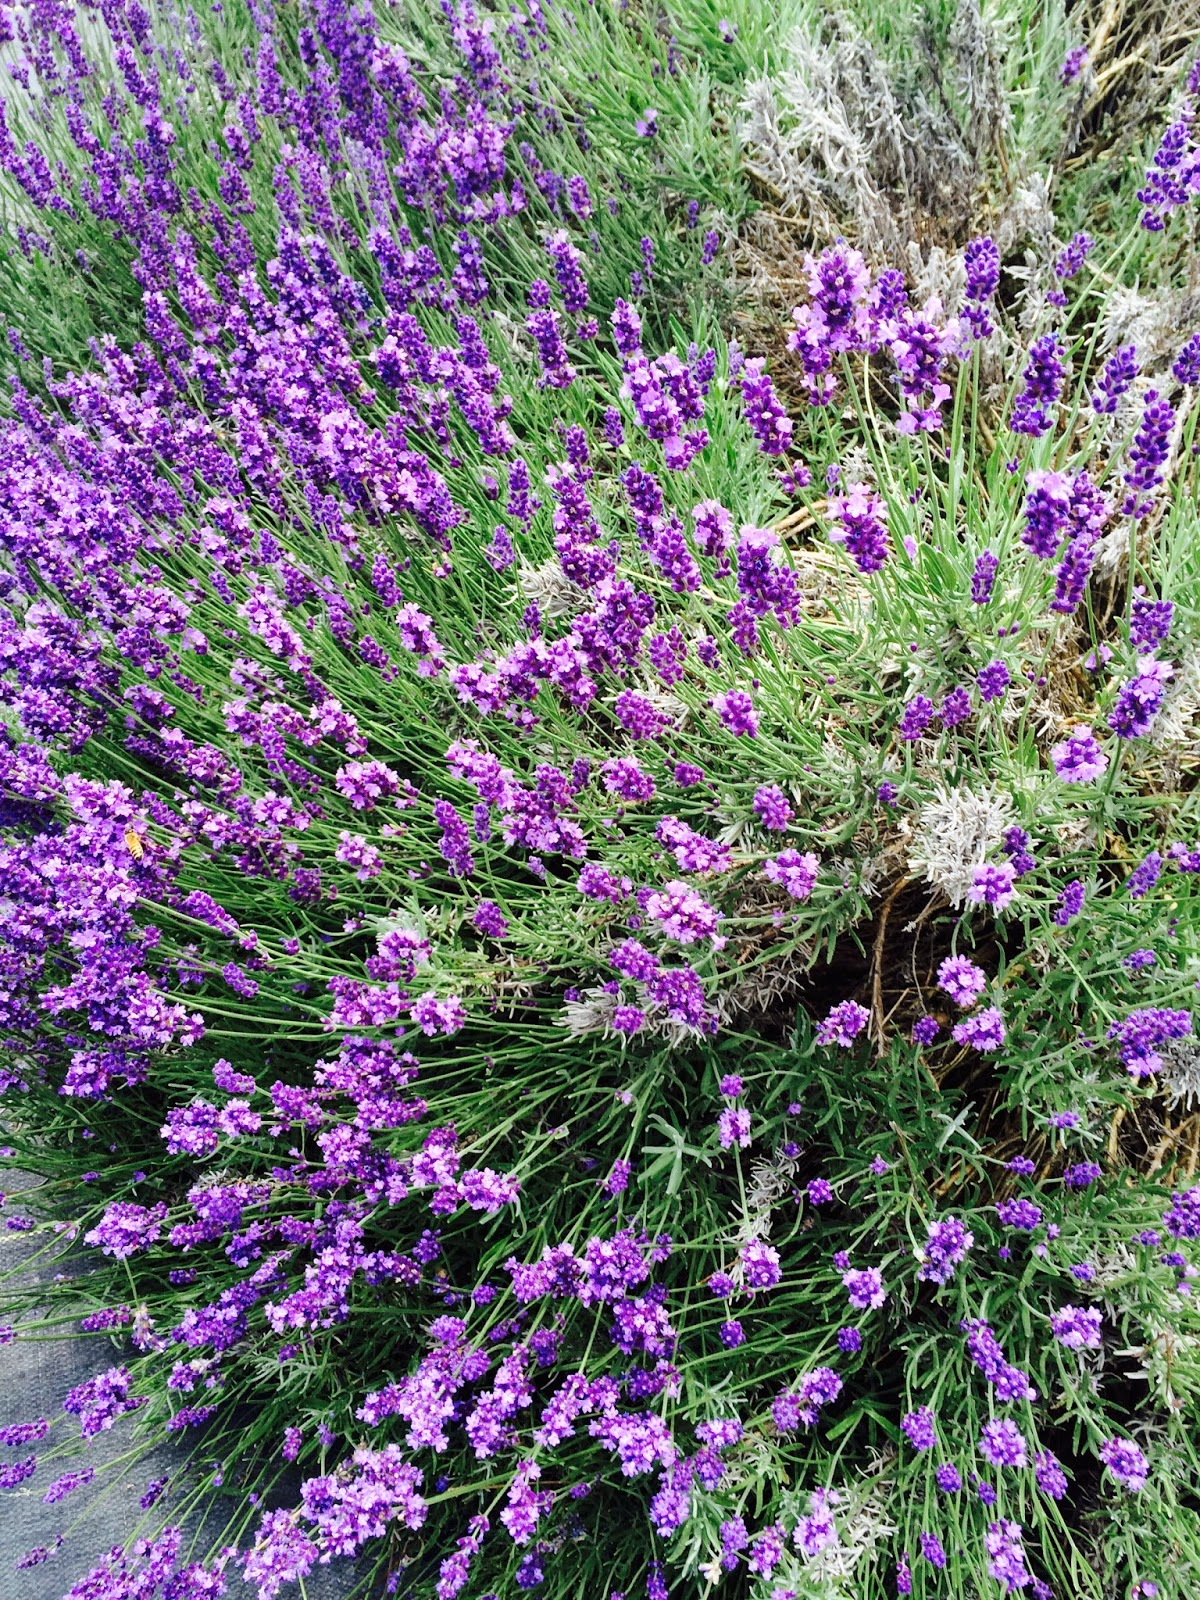 News From The Hill: White Oak Lavender Farm